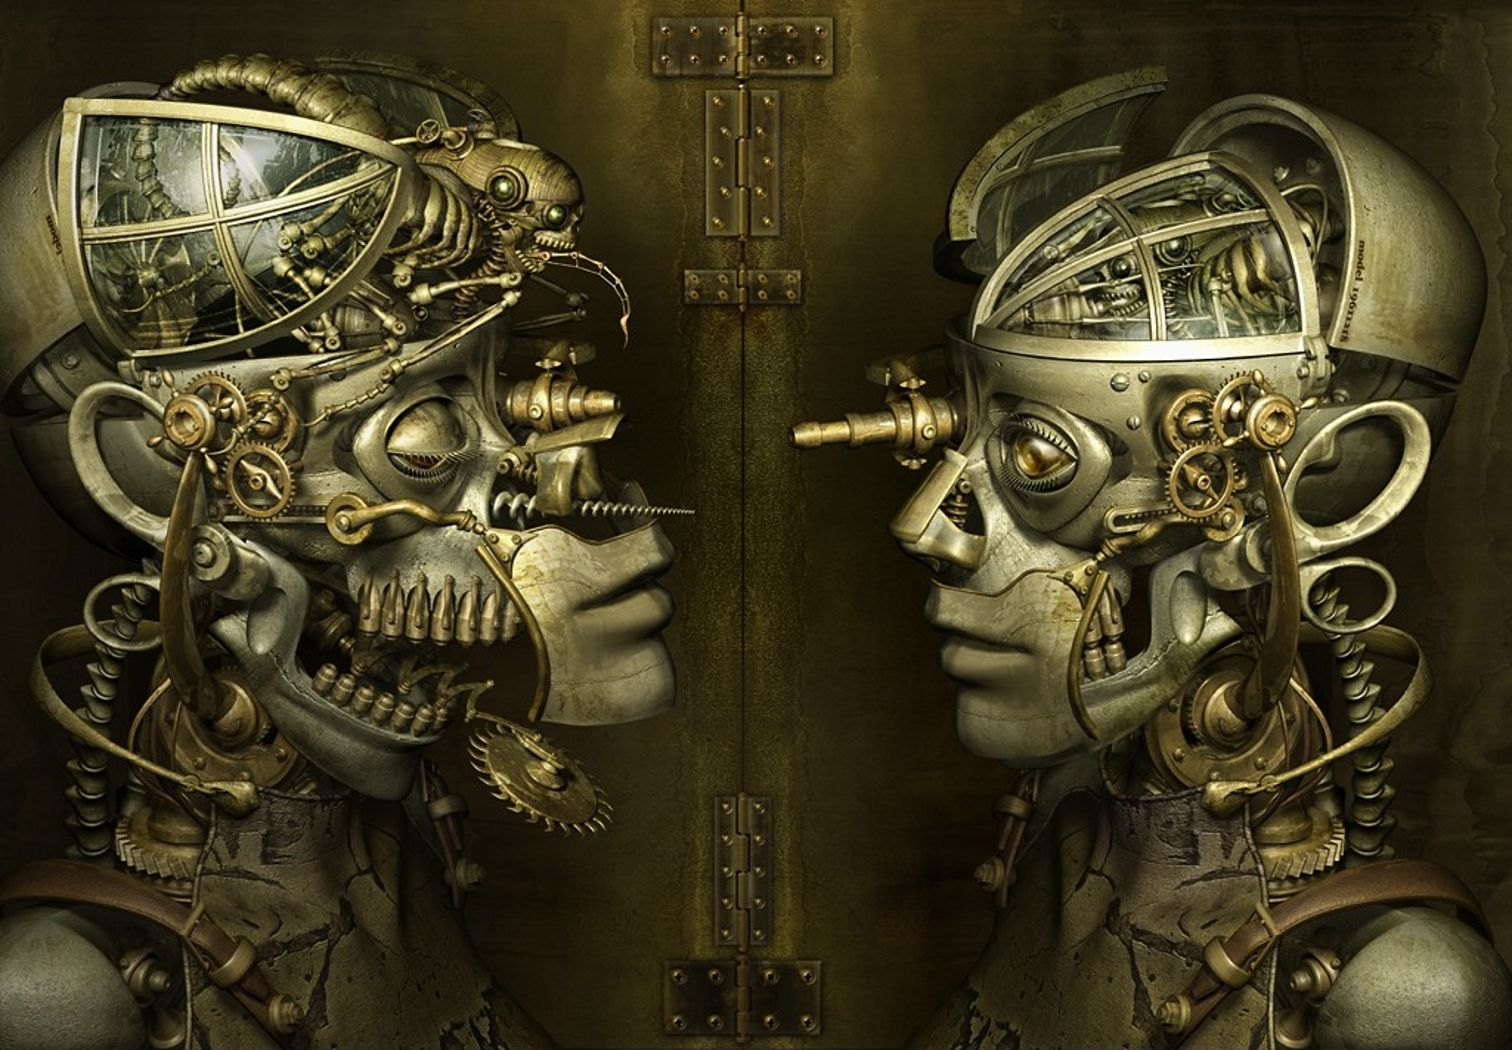 Mechanical Engineering Wallpapers Hd Wallpapersafari Steampunk Wallpaper Steampunk Robots Steampunk Art